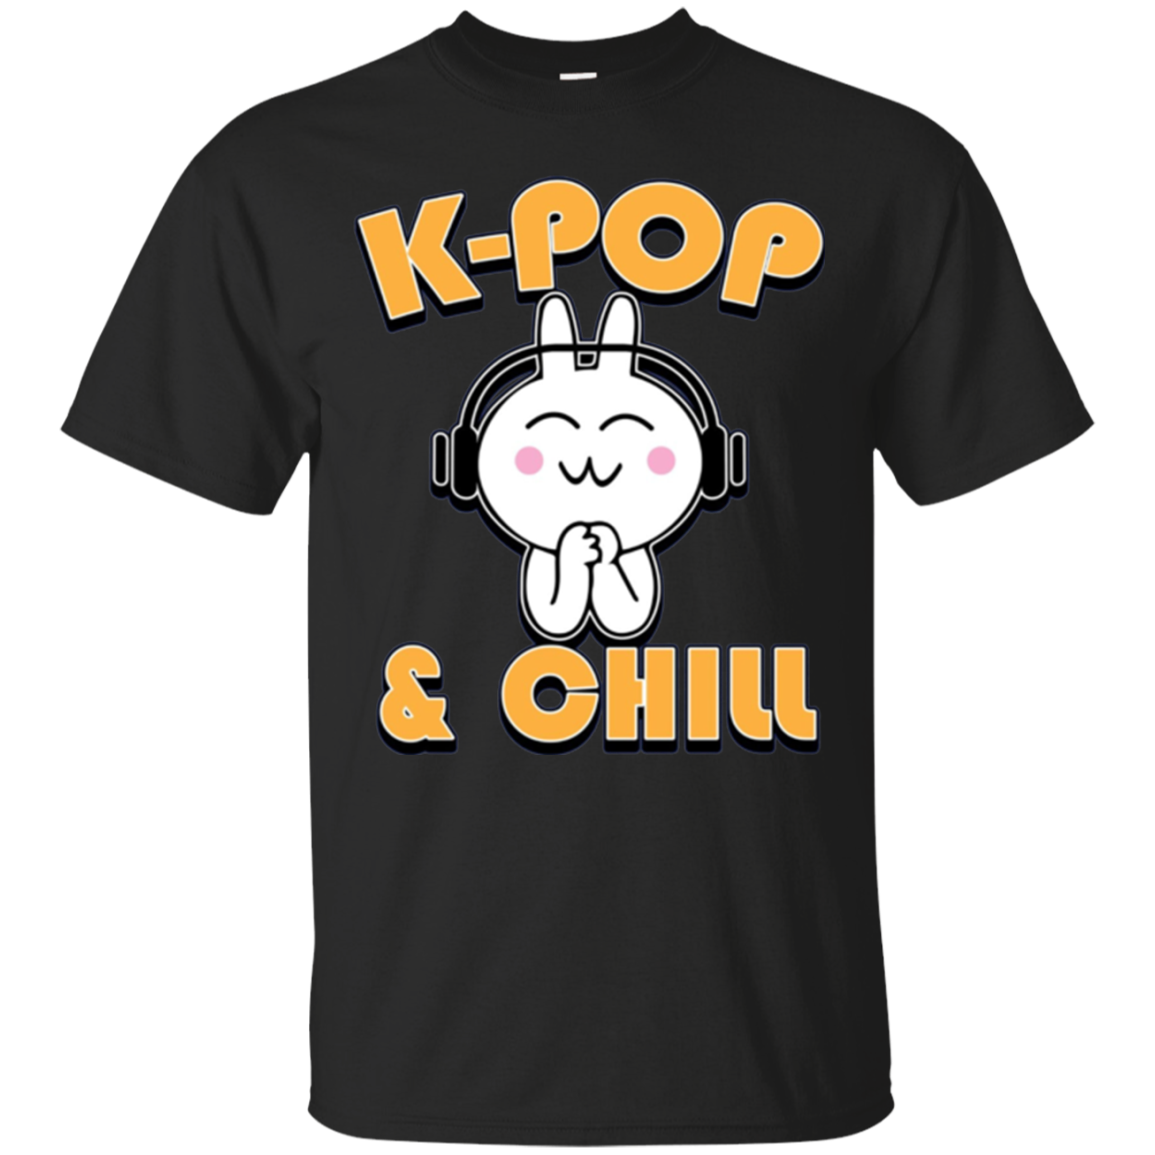 Kpop shirt - Kpop and Chill Long Sleeved Shirt